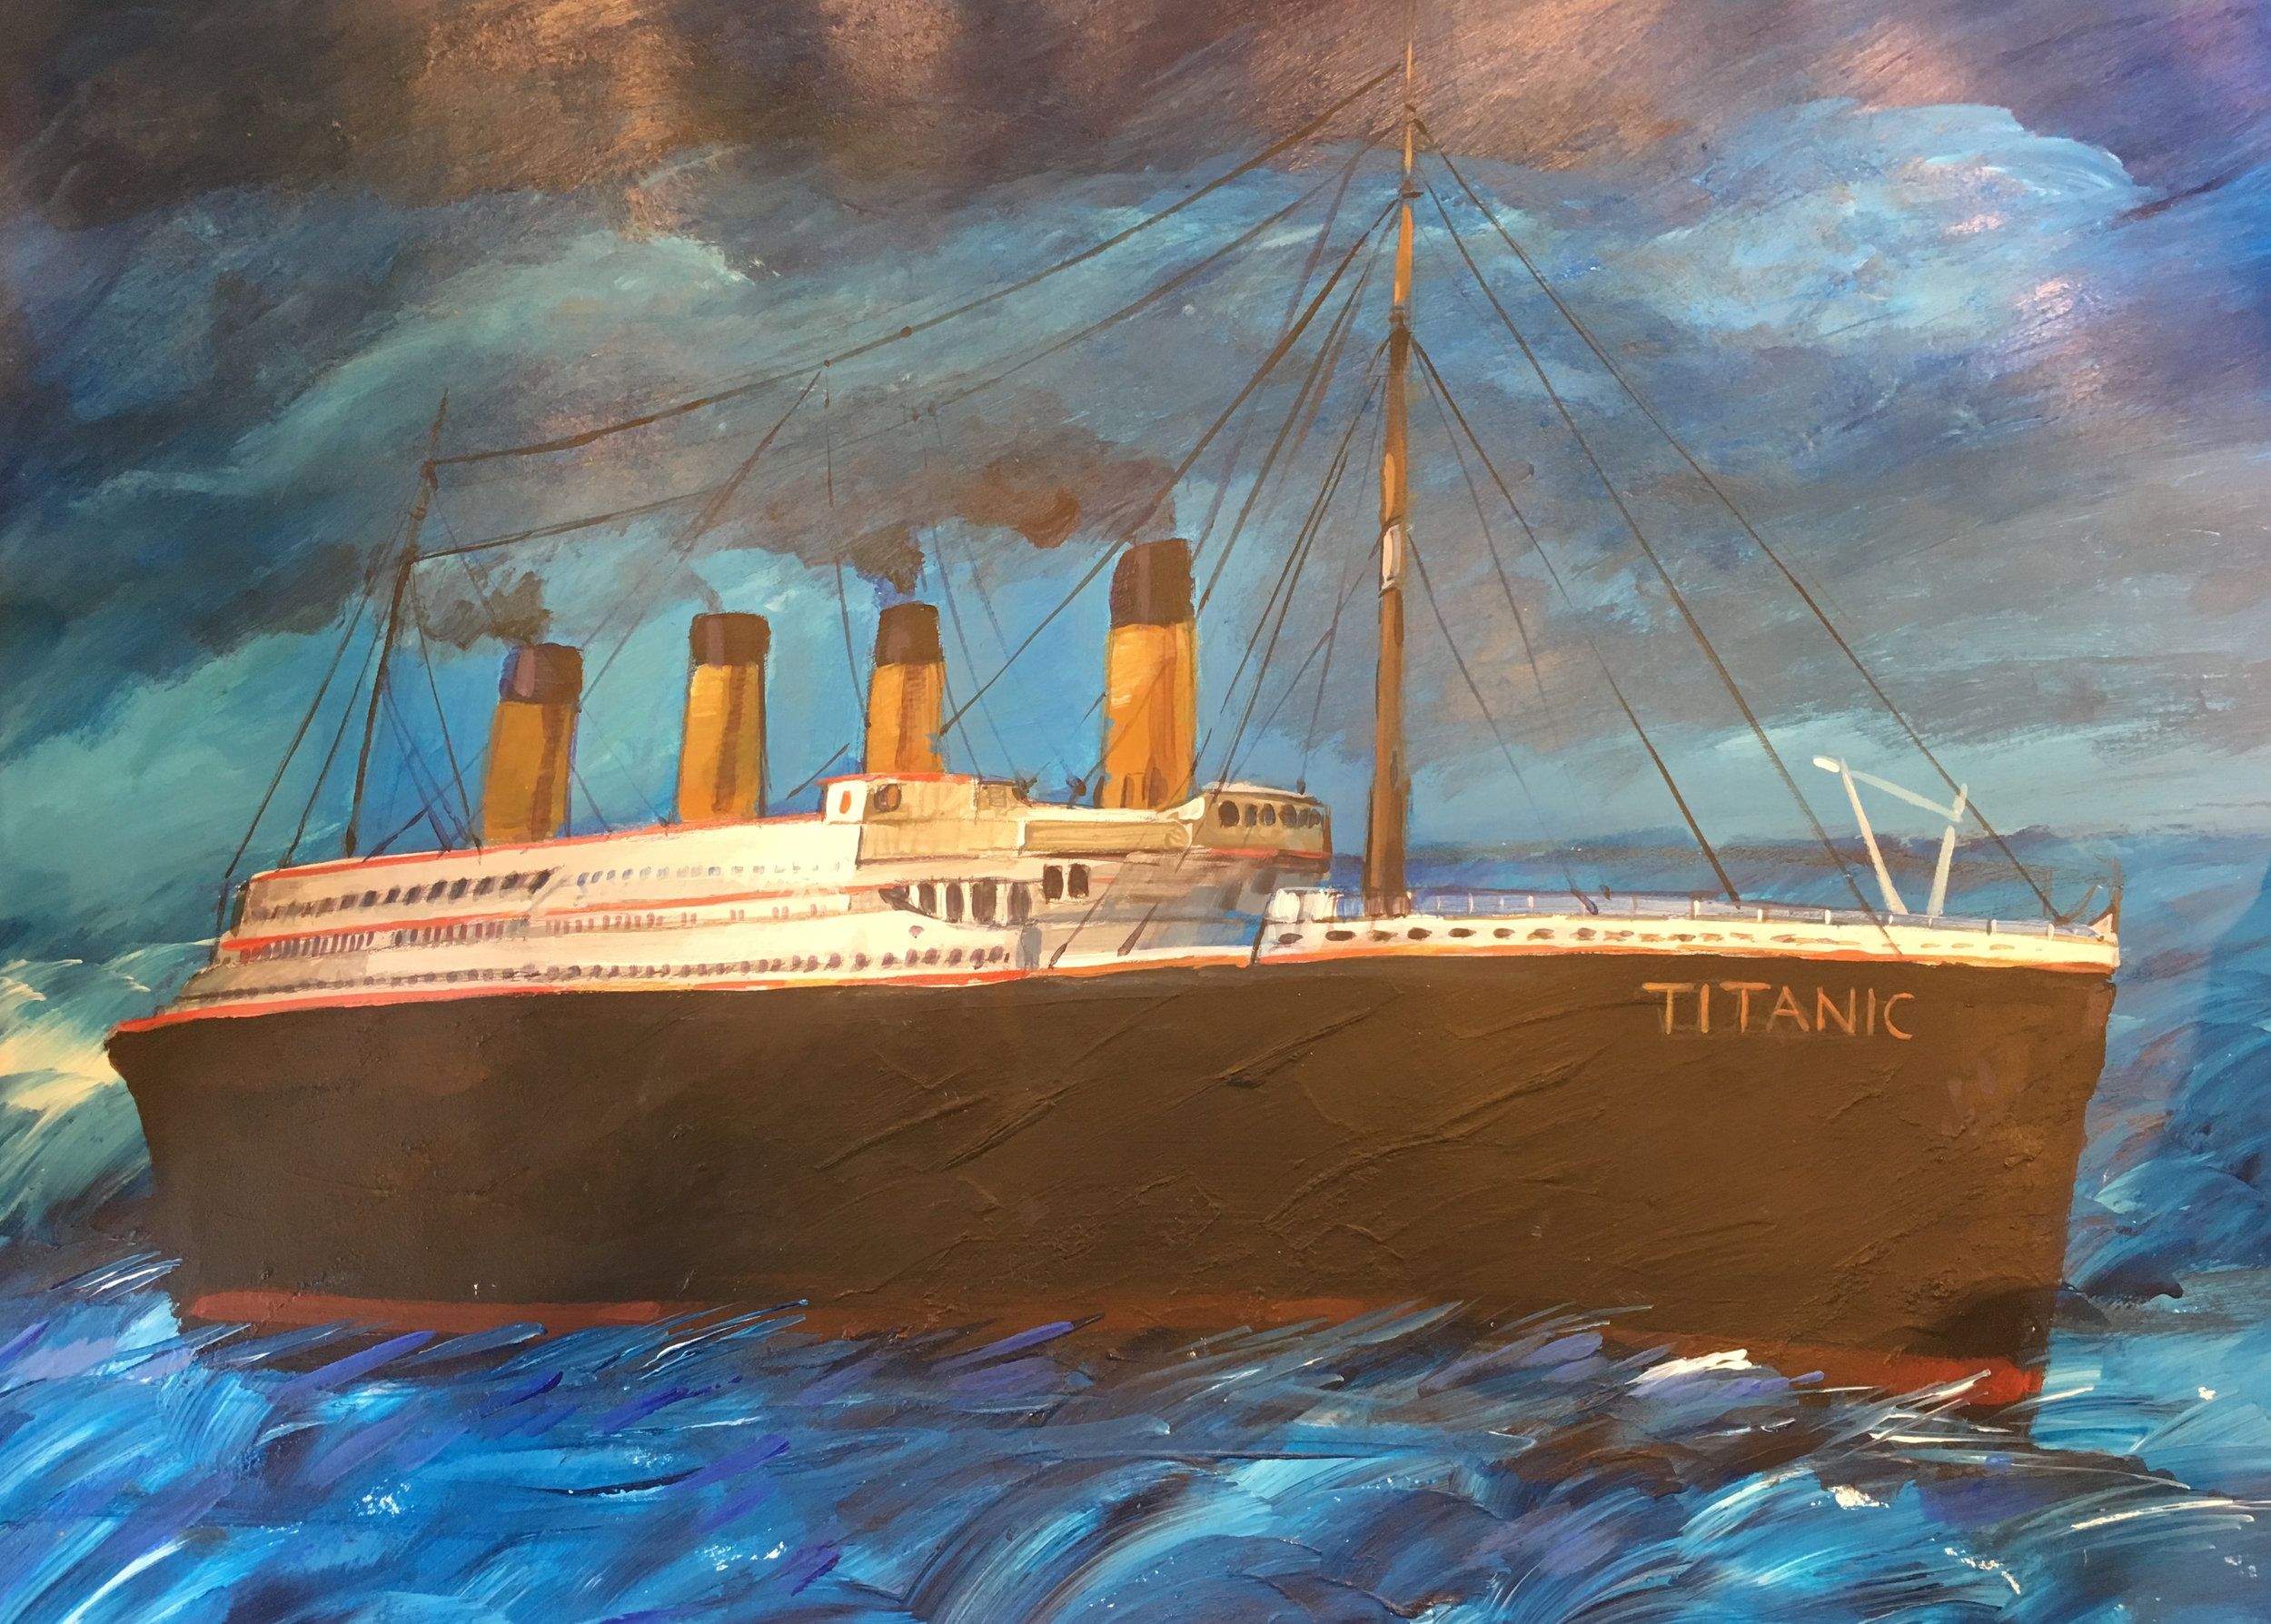 Muhammad Ansi, Titanic (Recalled from Viewing during Interrogation), 2016.